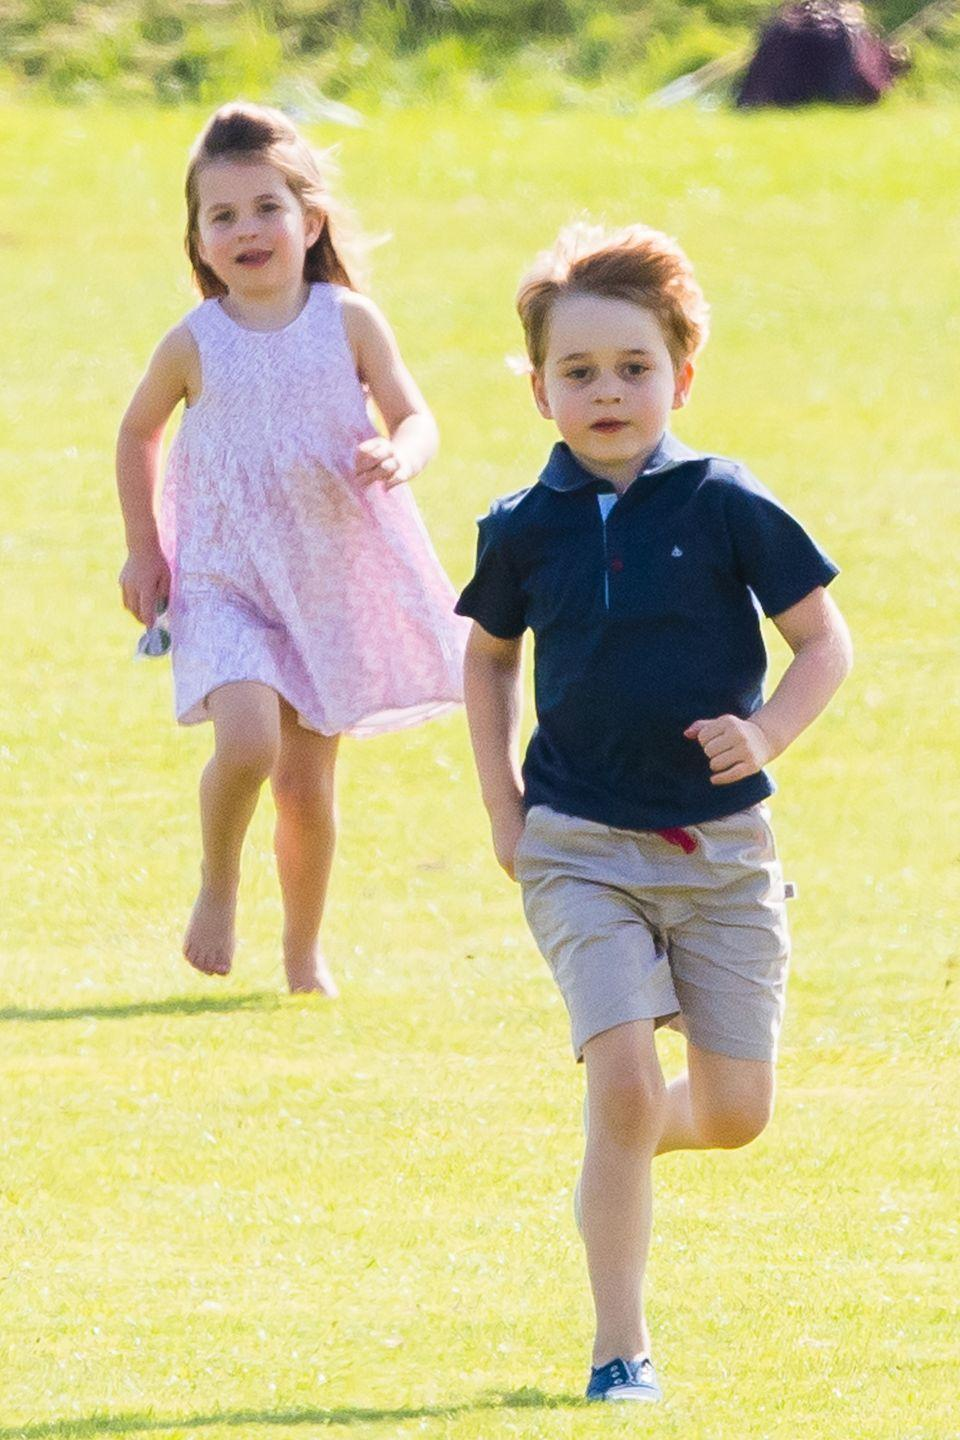 "<p>The royal brother and sister look adorable as they busy themselves with games and <a href=""https://www.harpersbazaar.com/celebrity/latest/a21266824/princess-charlotte-makes-kate-middleton-laugh/"" rel=""nofollow noopener"" target=""_blank"" data-ylk=""slk:goofy antics"" class=""link rapid-noclick-resp"">goofy antics</a> during the polo match. </p>"